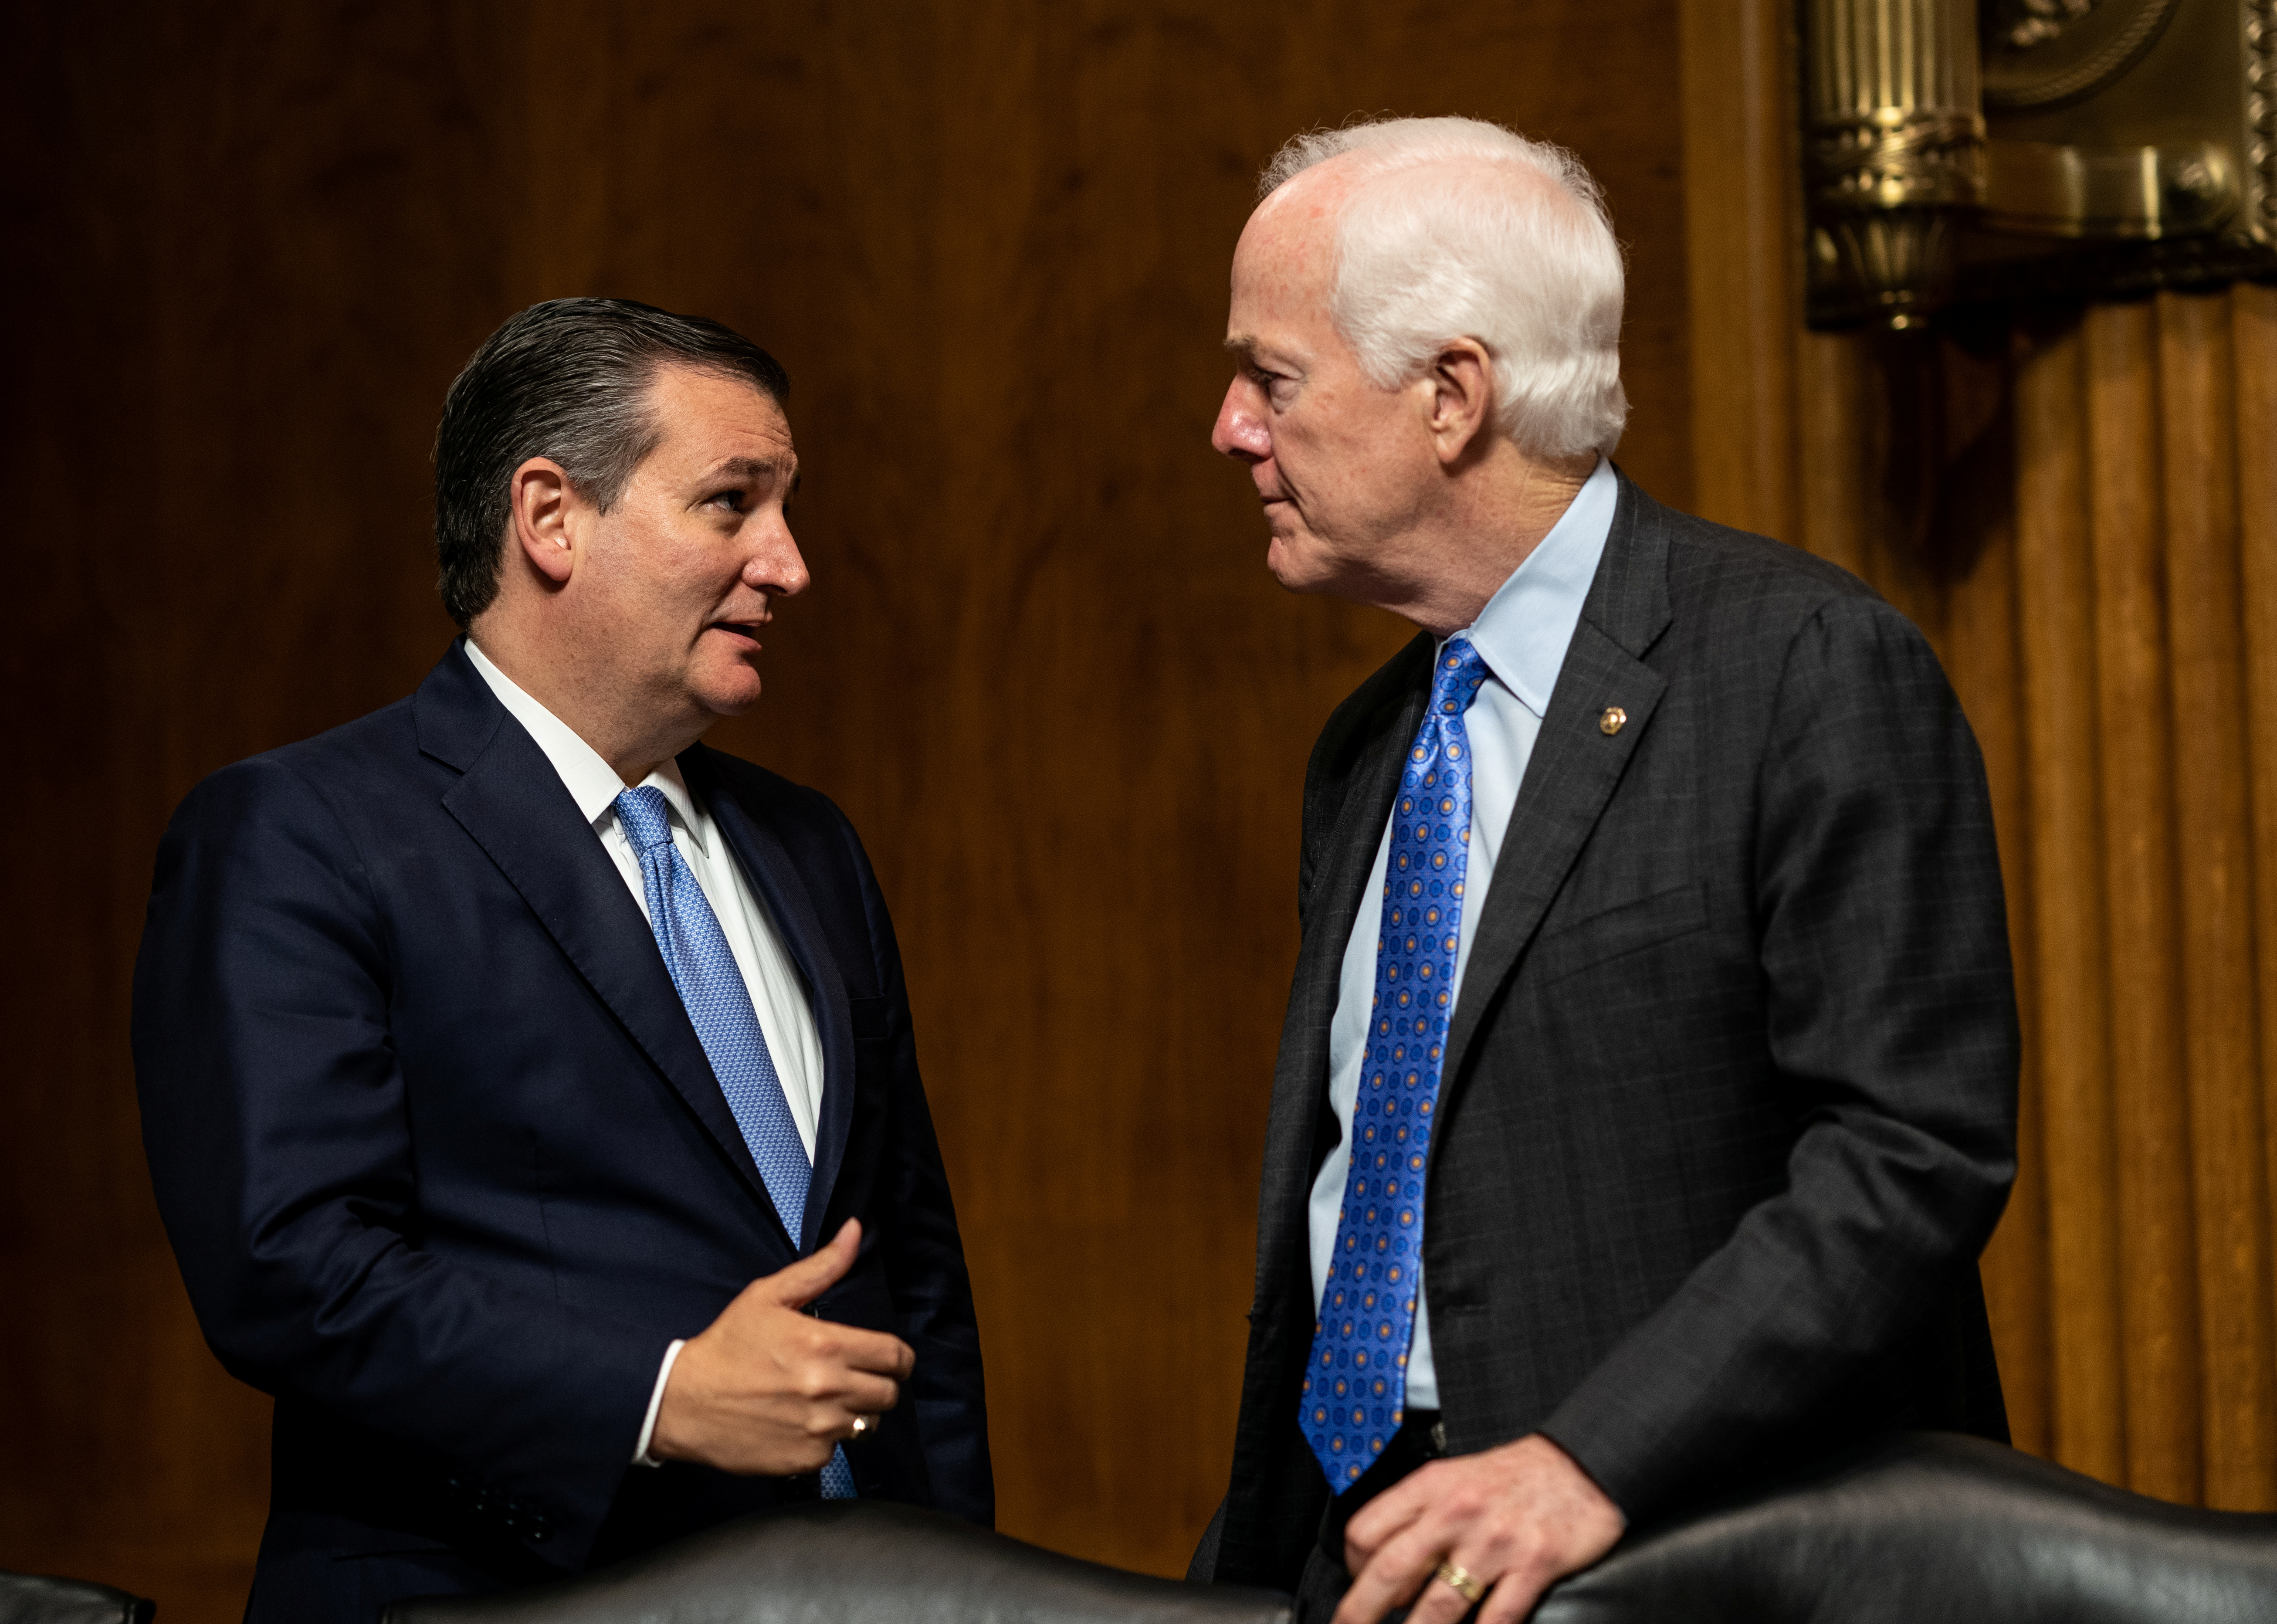 Senators Ted Cruz, left, and John Cornyn talk as Judge Brett Kavanaugh testifies in front of the Senate Judiciary committee regarding sexual assault allegations at the Dirksen Senate Office Building on Capitol Hill in Washington, U.S., September 27, 2018. Erin Schaff/Pool via REUTERS